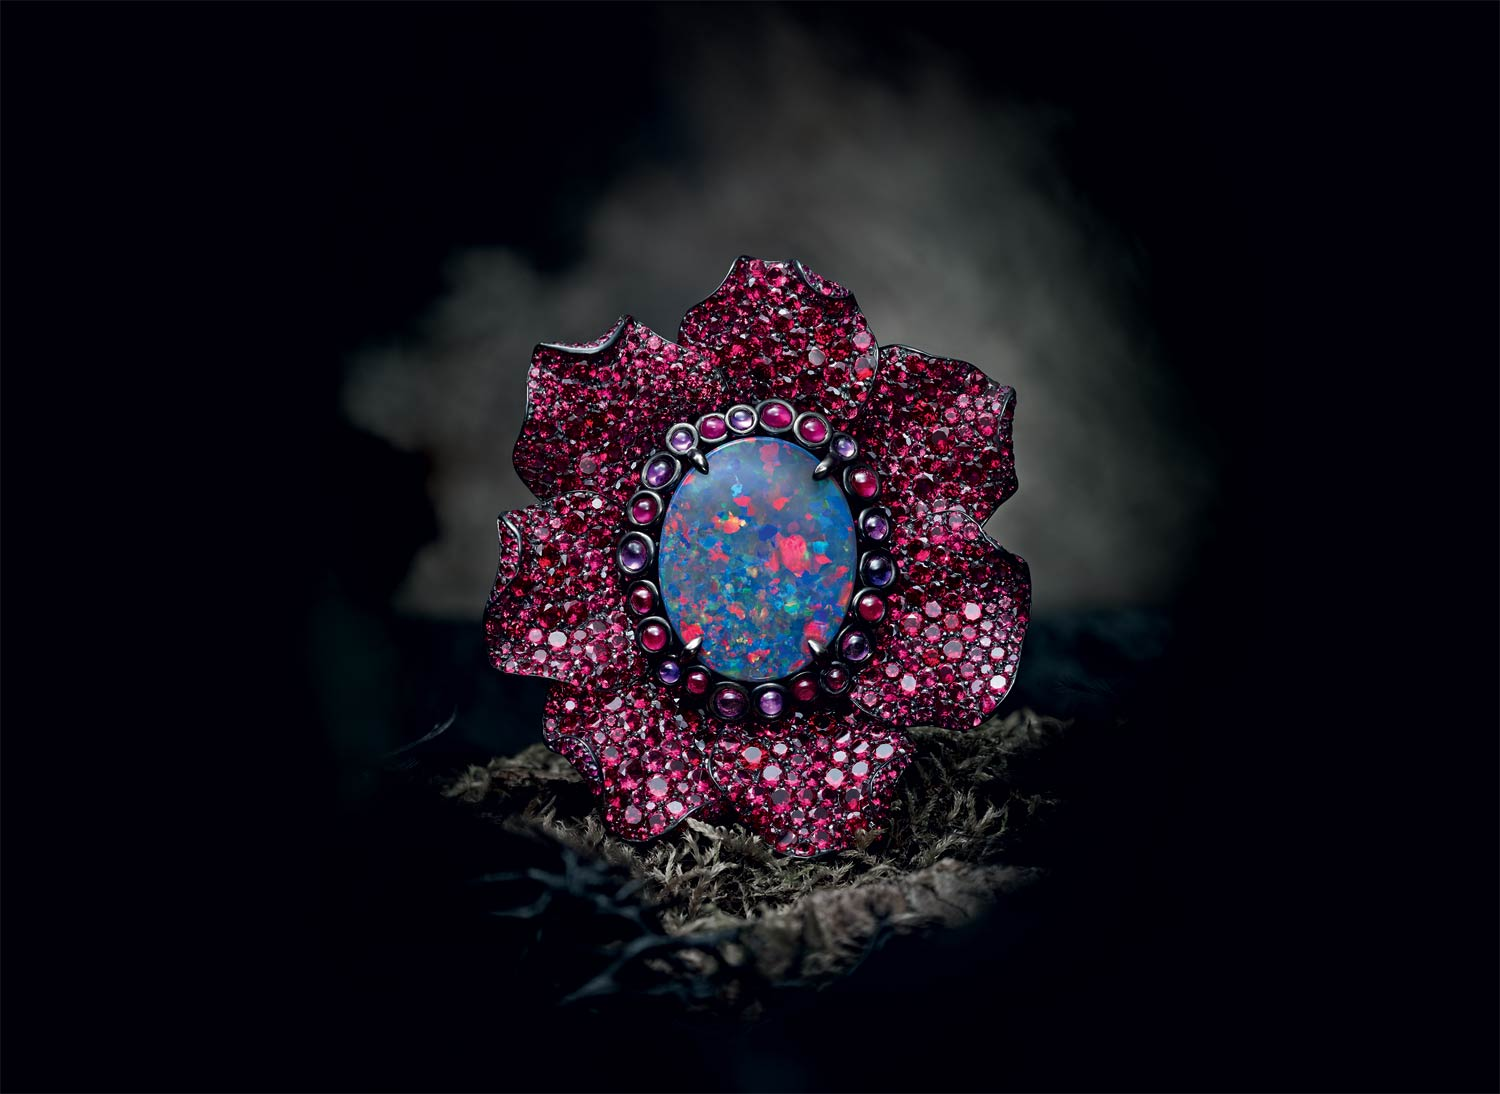 Fleurs d'Opales - Chopard reveals a fascinating Haute Joaillerie capsule collection, an extraordinary, mystery-infused garden